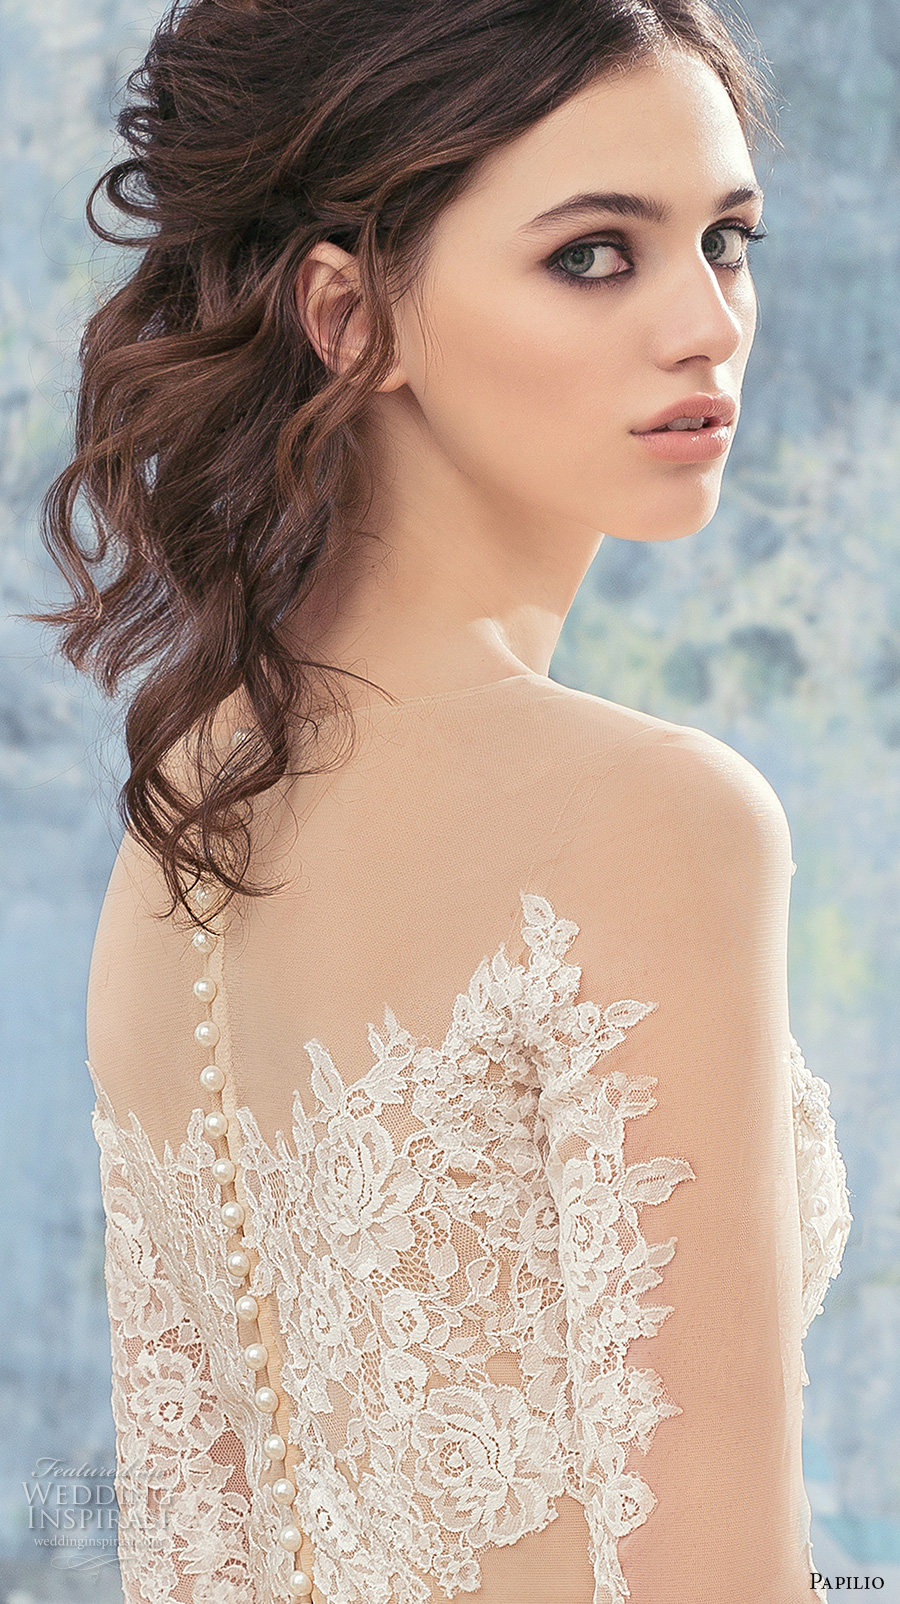 papilio 2017 bridal long sleeves illusion jewel sweetheart neckline full embellishement elegant sheath wedding dress lace back chaple train (eagle) zbv